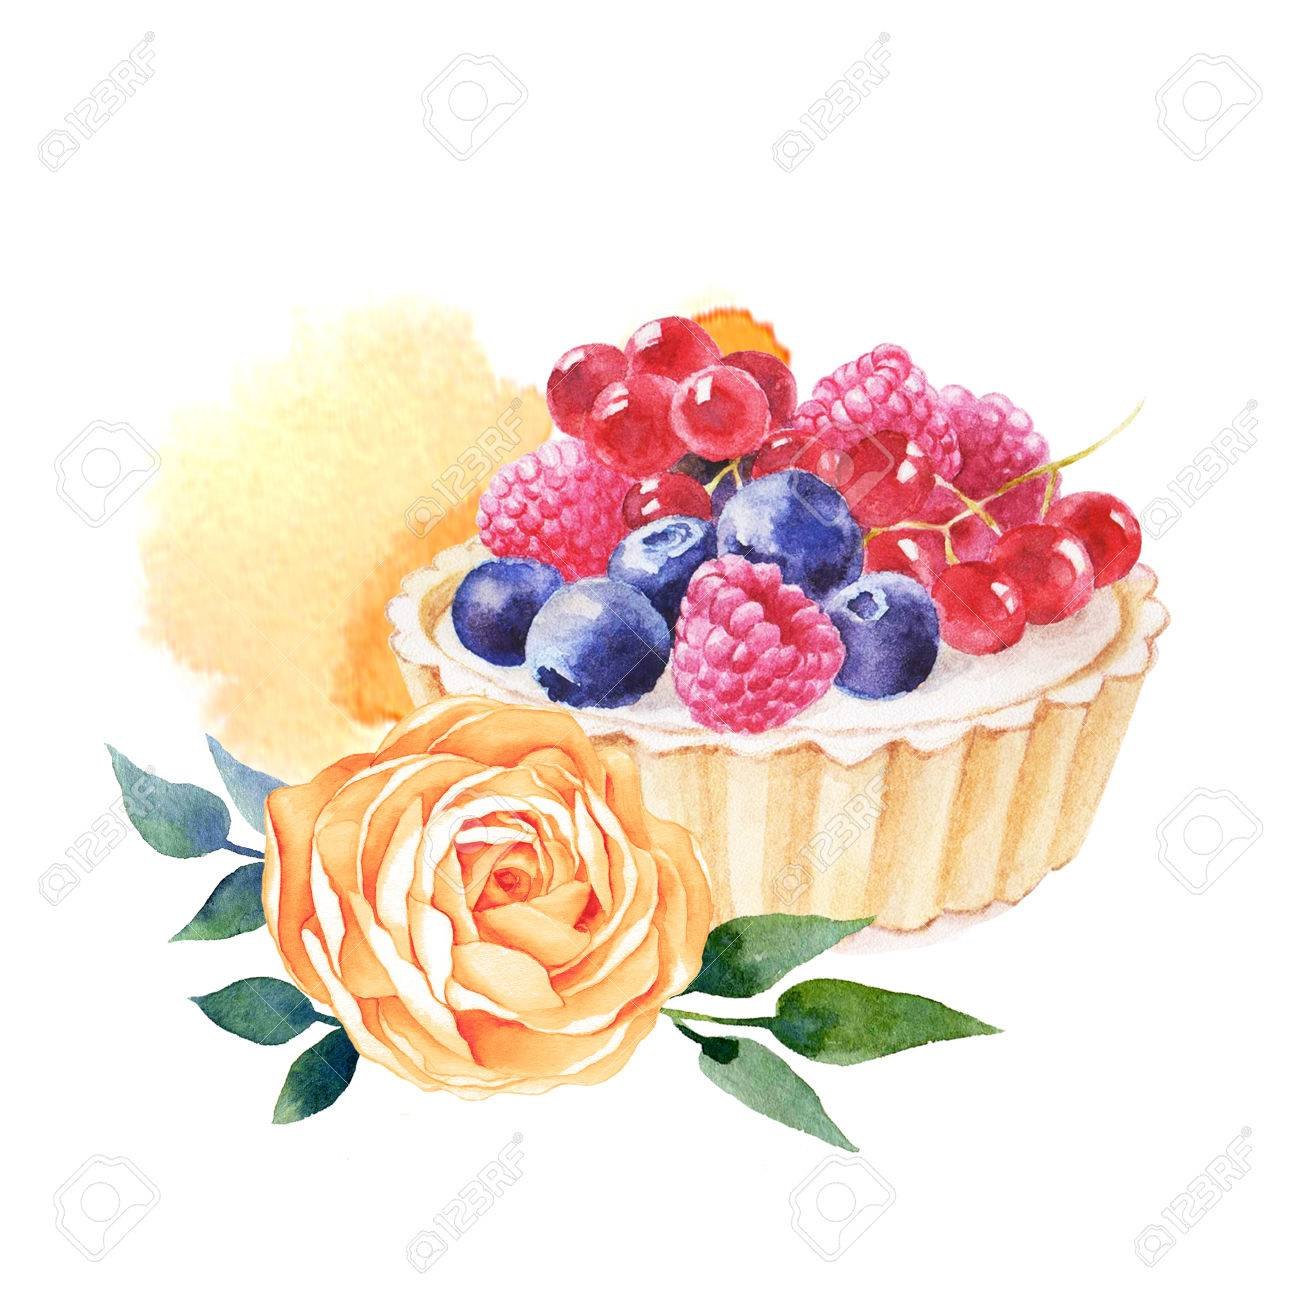 Cake hand drawn watercolor illustration on white background. It can be used for card, postcard, cover, invitation, wedding card, birthday card. - 67644057